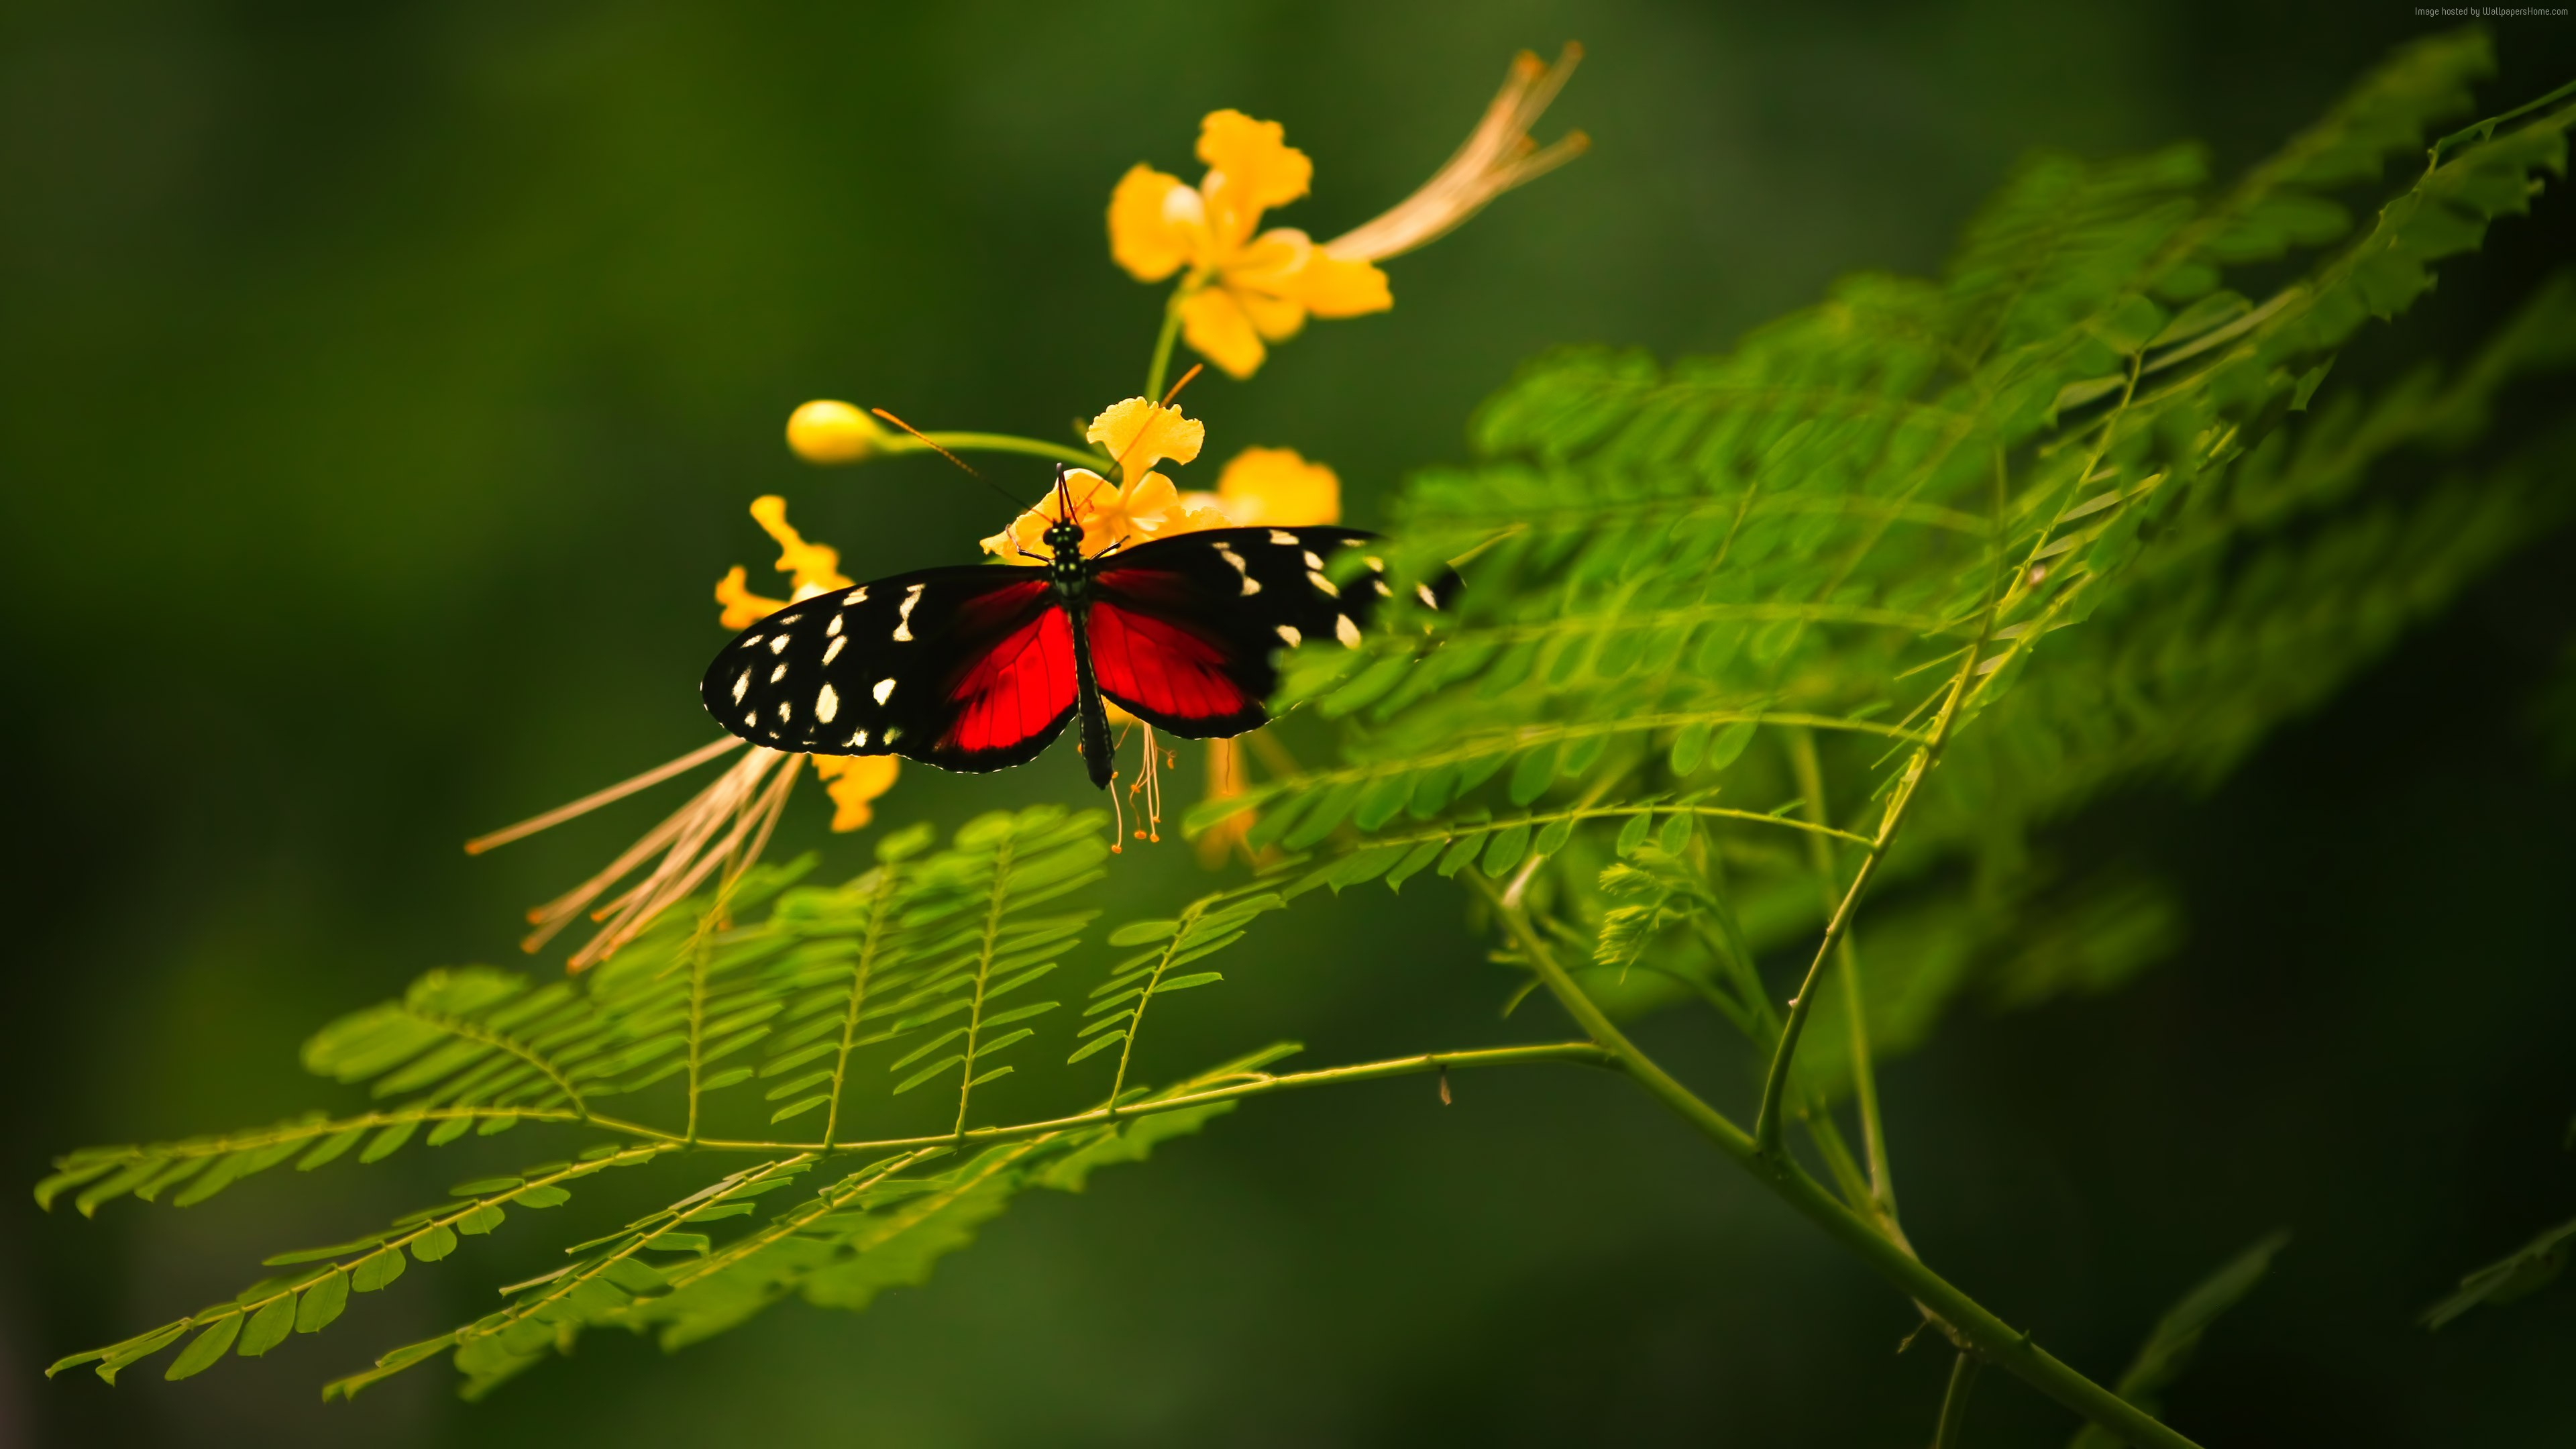 Wallpaper Beautiful Butterfly, red wings, green background, wild nature, yellow flowers, insects, Animals